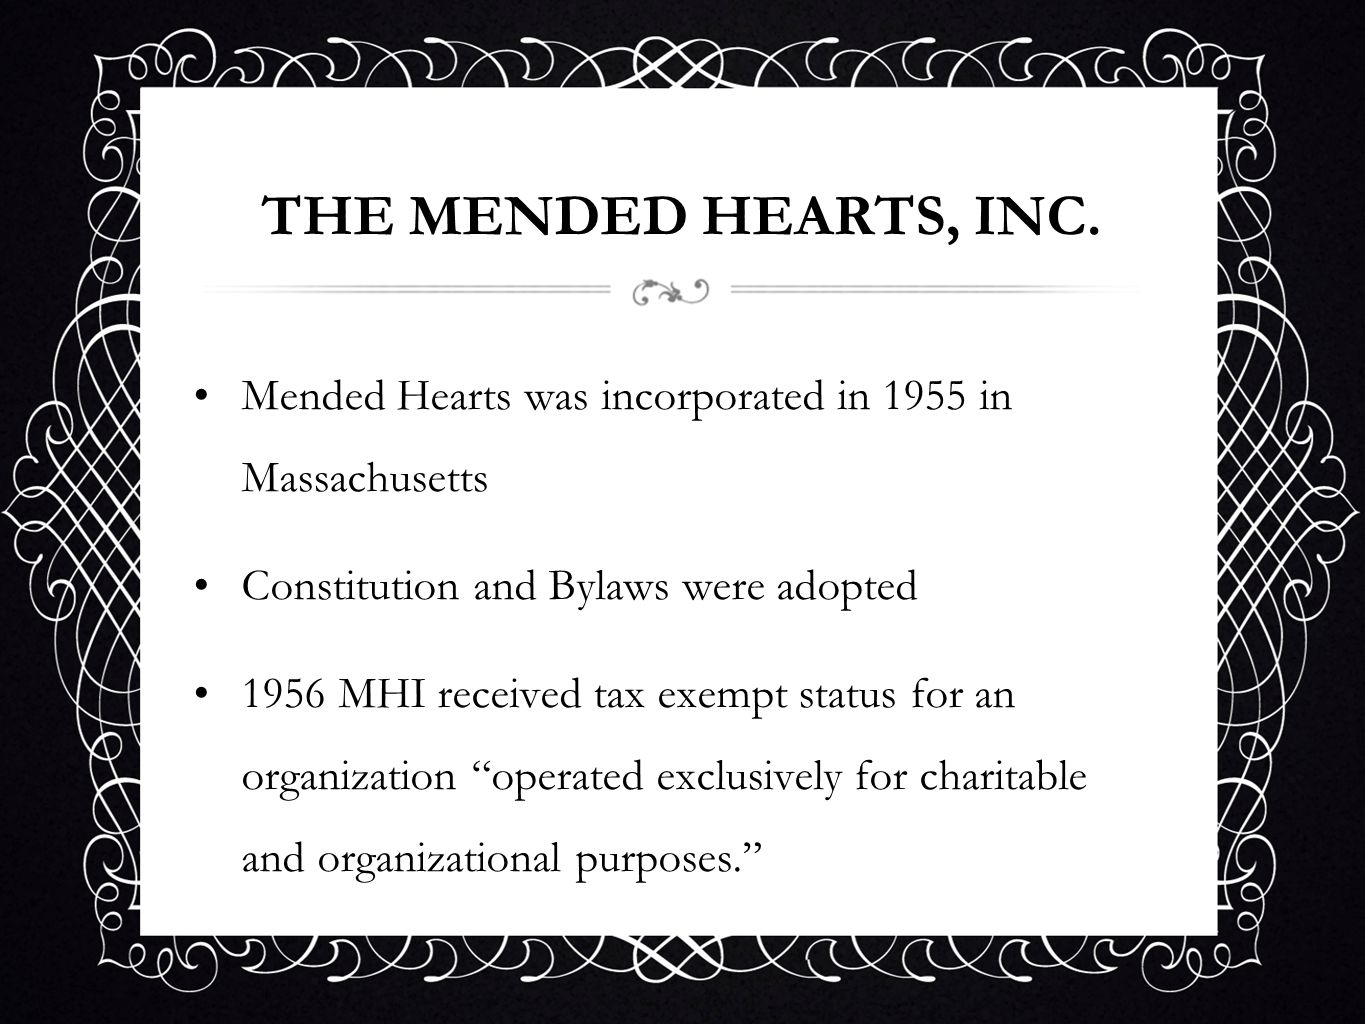 THE MENDED HEARTS, INC.Mended Hearts was incorporated in 1955 in Massachusetts. Constitution and Bylaws were adopted.